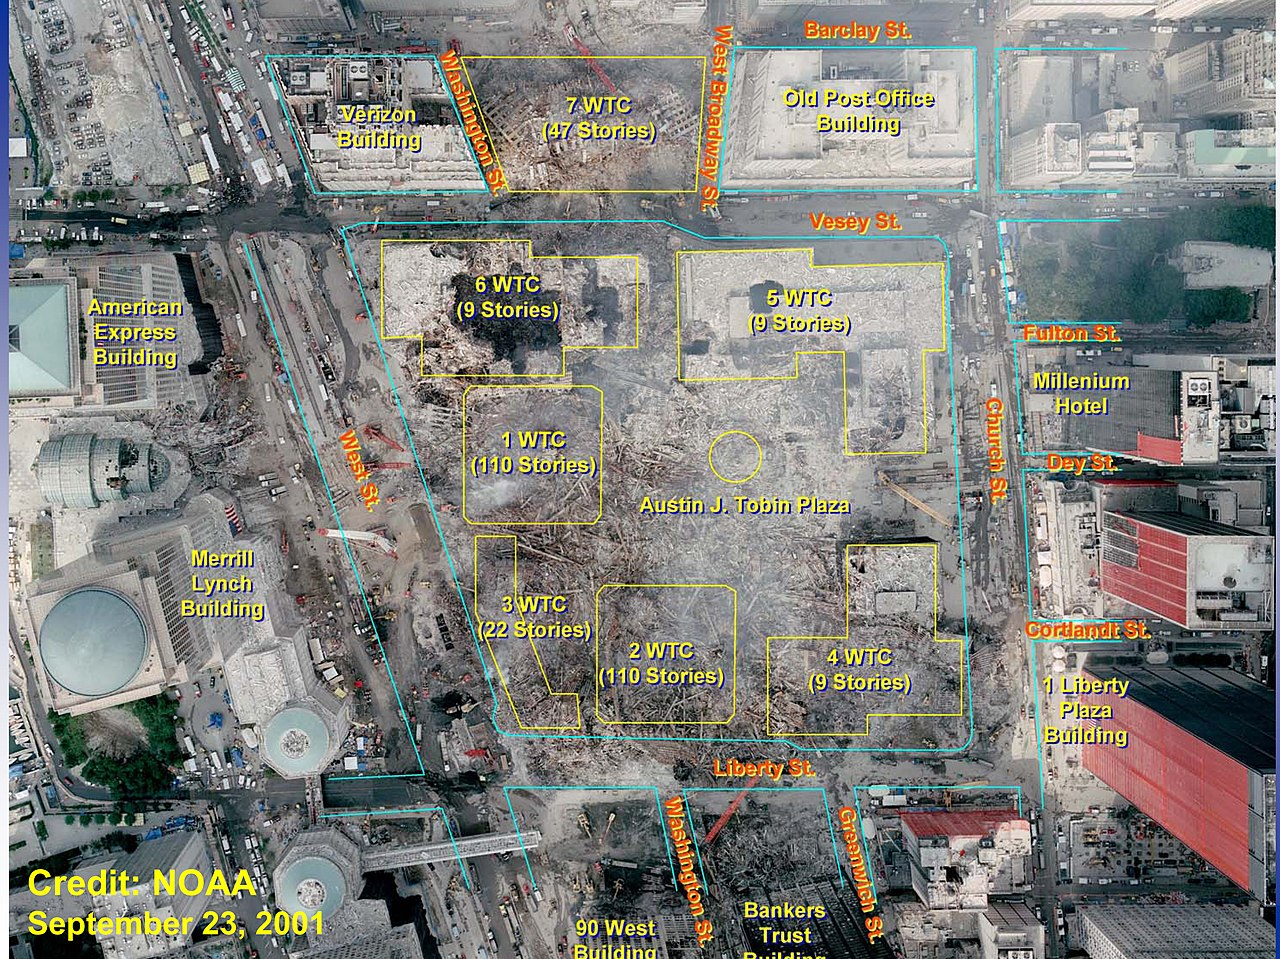 http://upload.wikimedia.org/wikipedia/commons/thumb/1/13/World_Trade_Center_Site_After_9-11_Attacks_With_Original_Building_Locations.jpg/1280px-World_Trade_Center_Site_After_9-11_Attacks_With_Original_Building_Locations.jpg?uselang=es